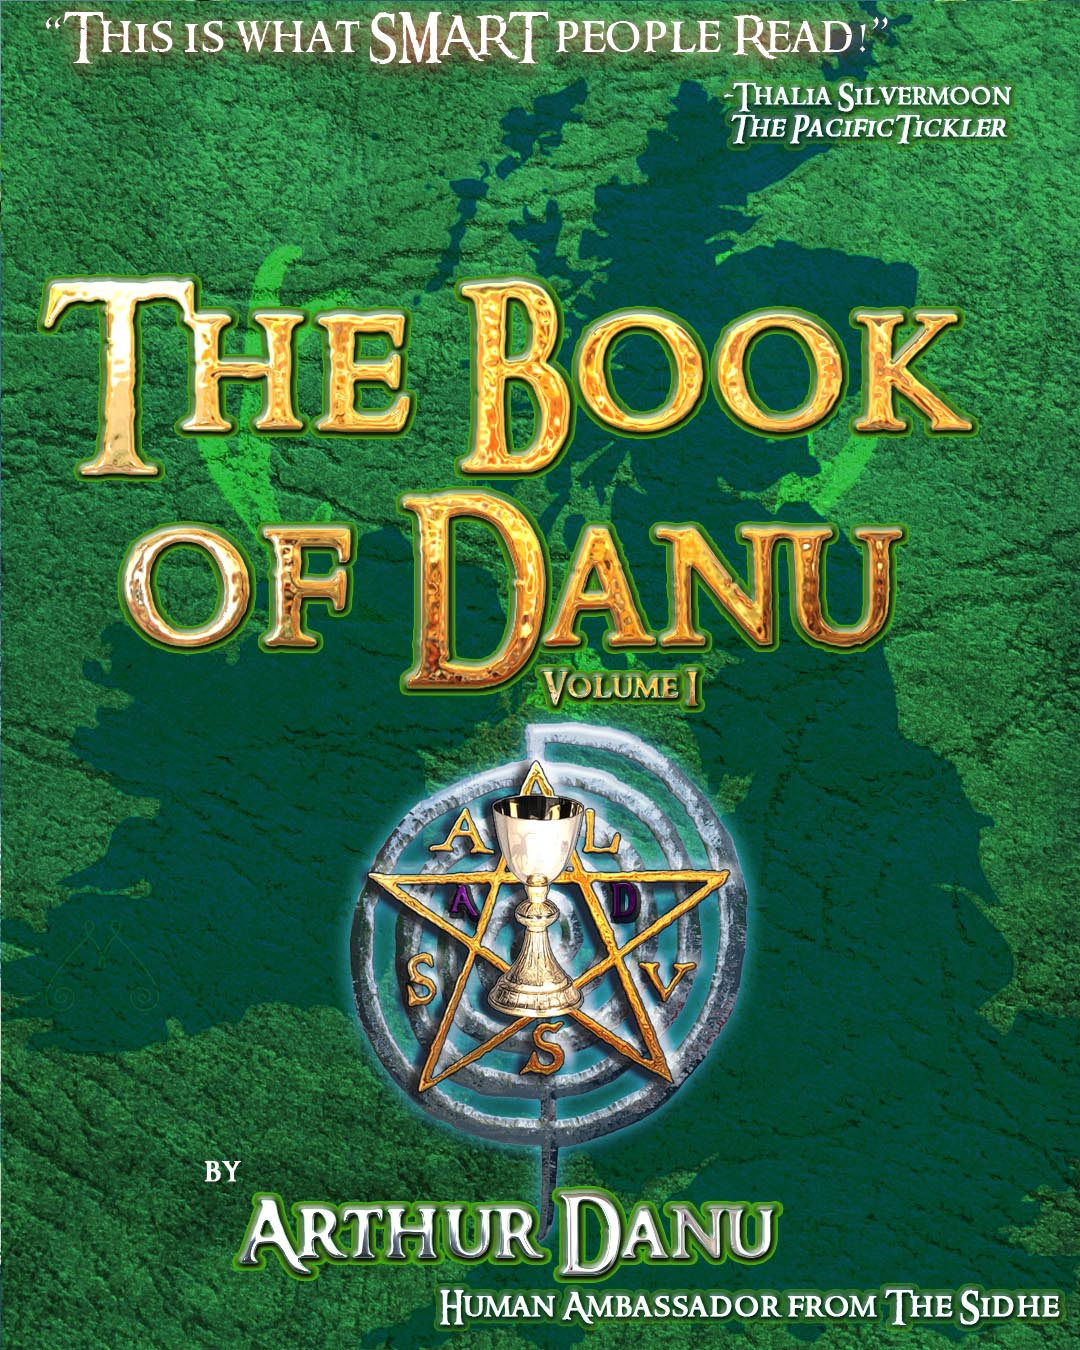 RBS : The Book of Danu (Volume I) : This is What Smart People Read!